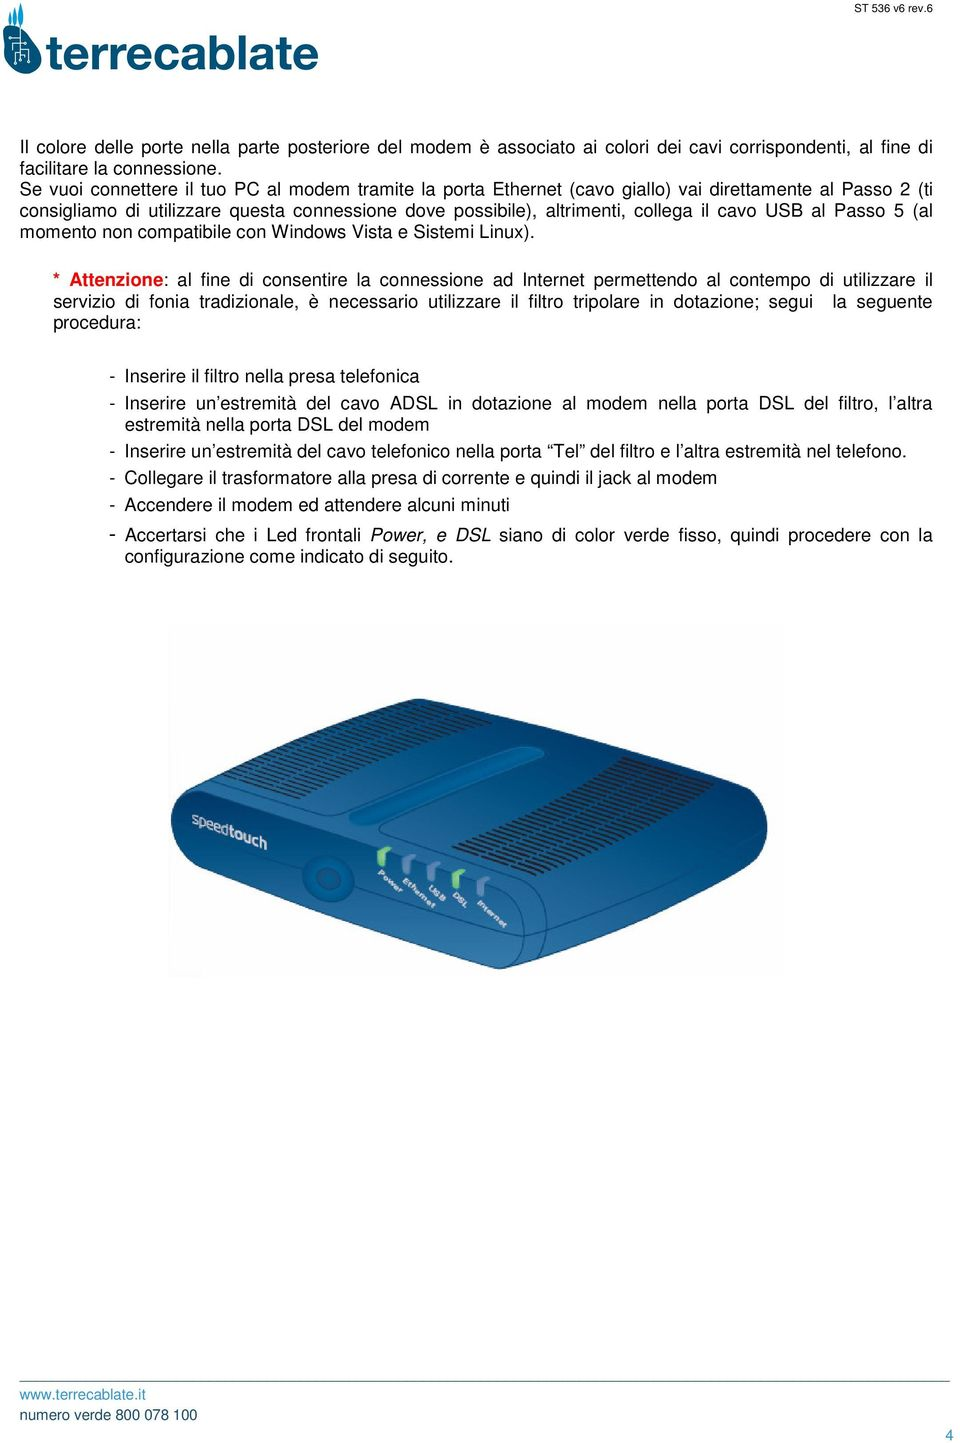 USB al Passo 5 (al momento non compatibile con Windows Vista e Sistemi Linux).